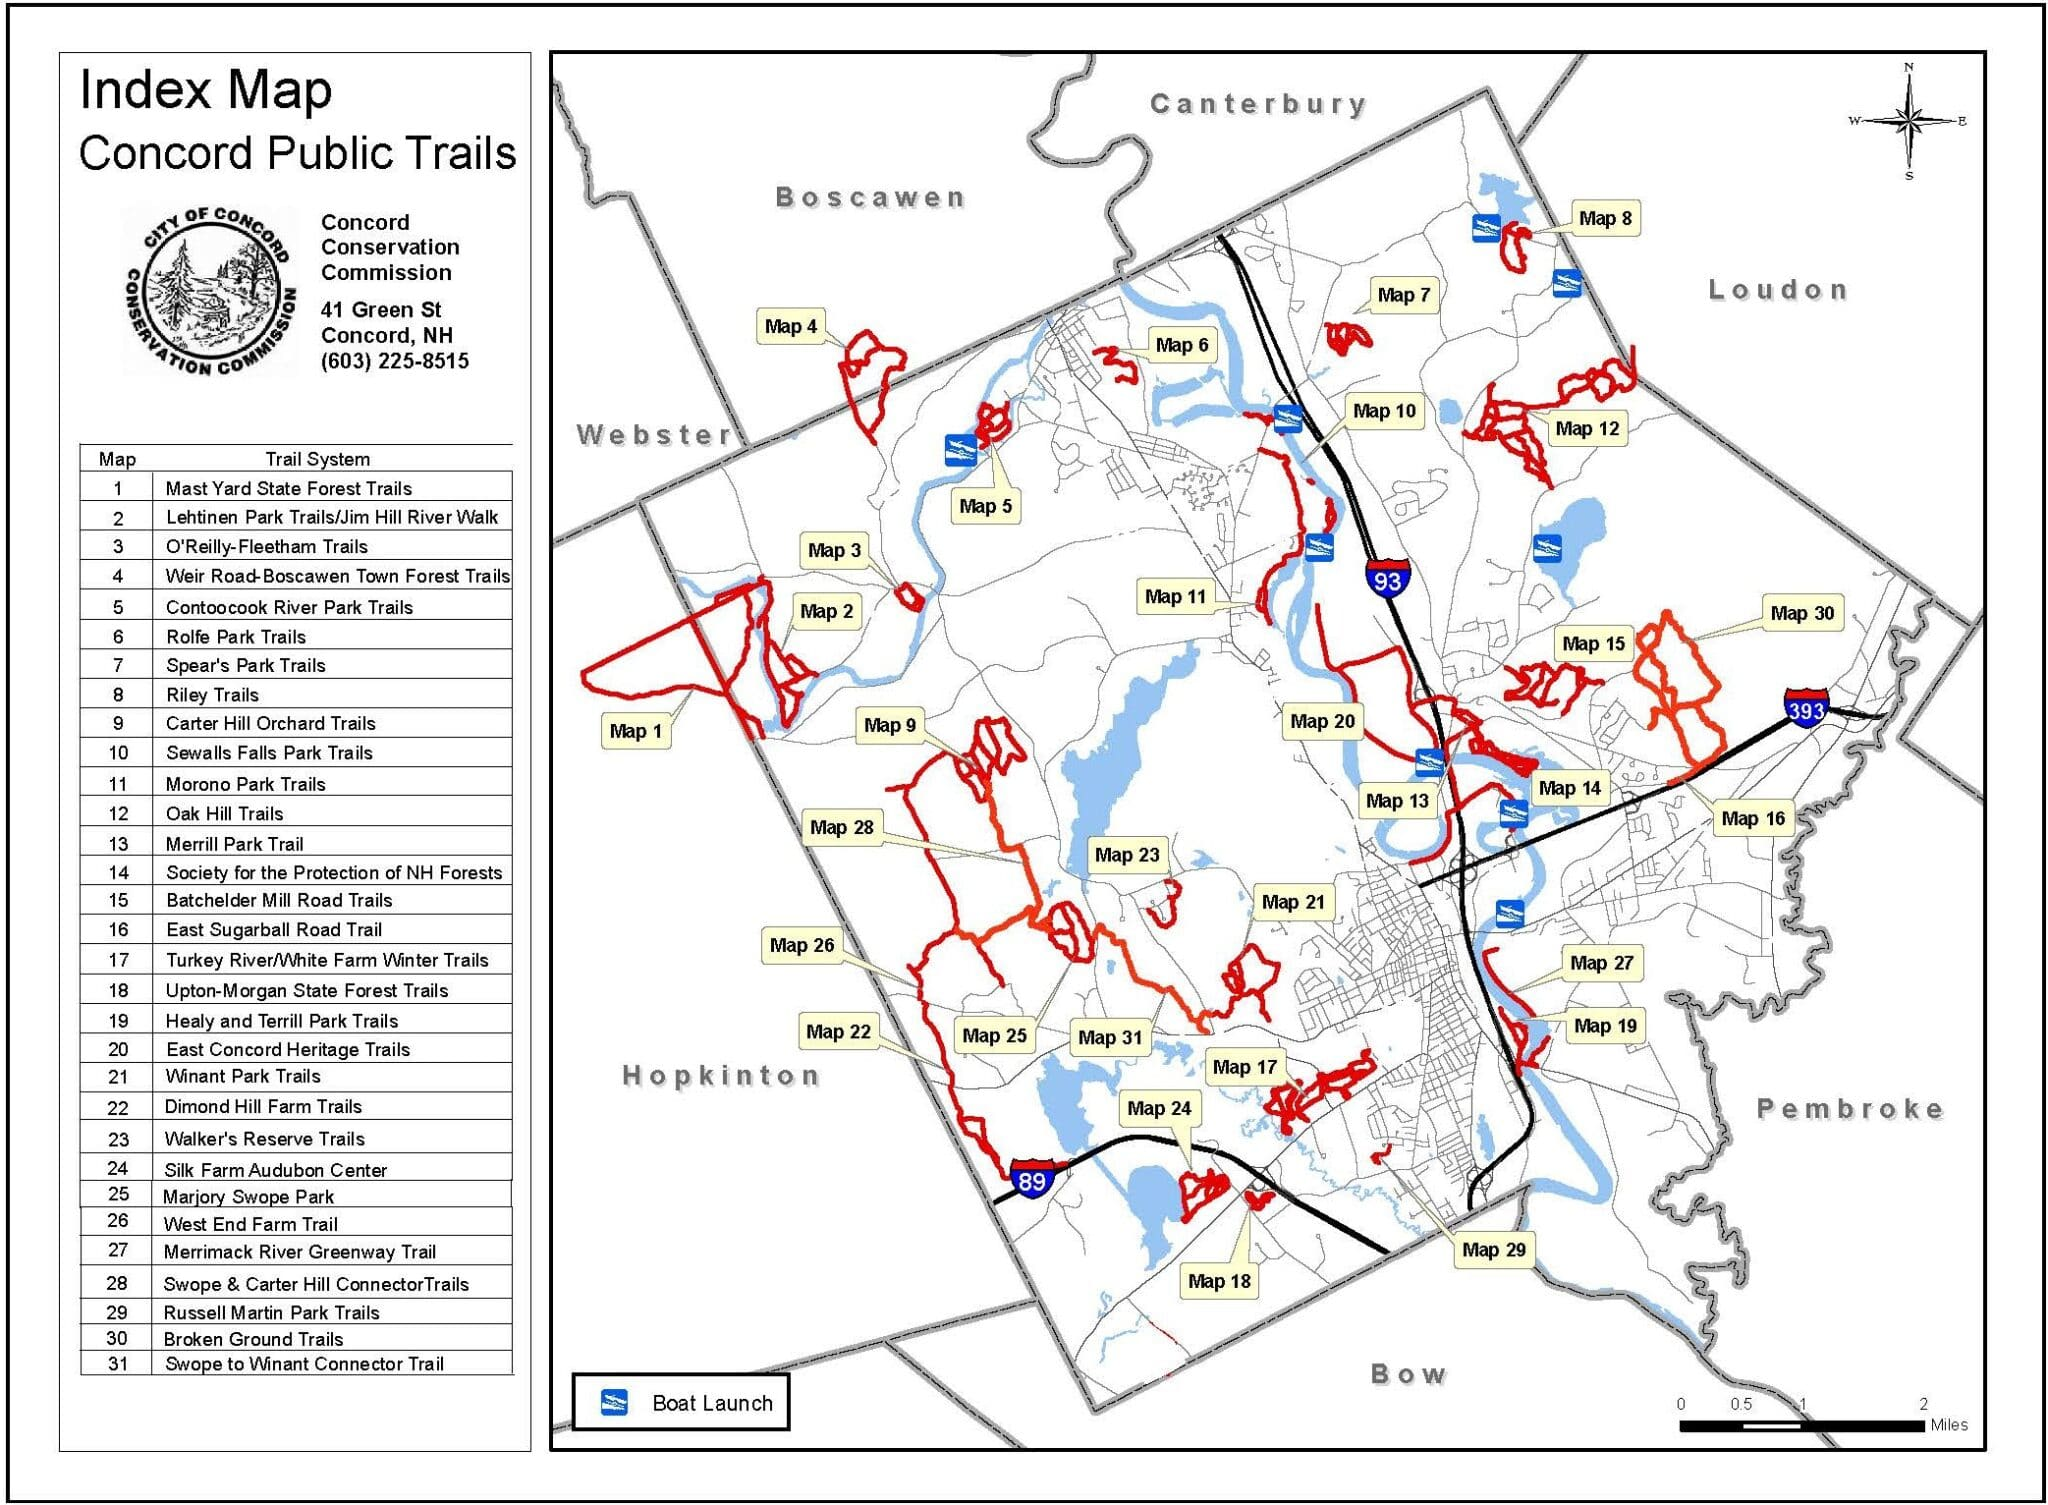 Hiking Trails provided by the city of Concord, New Hampshire